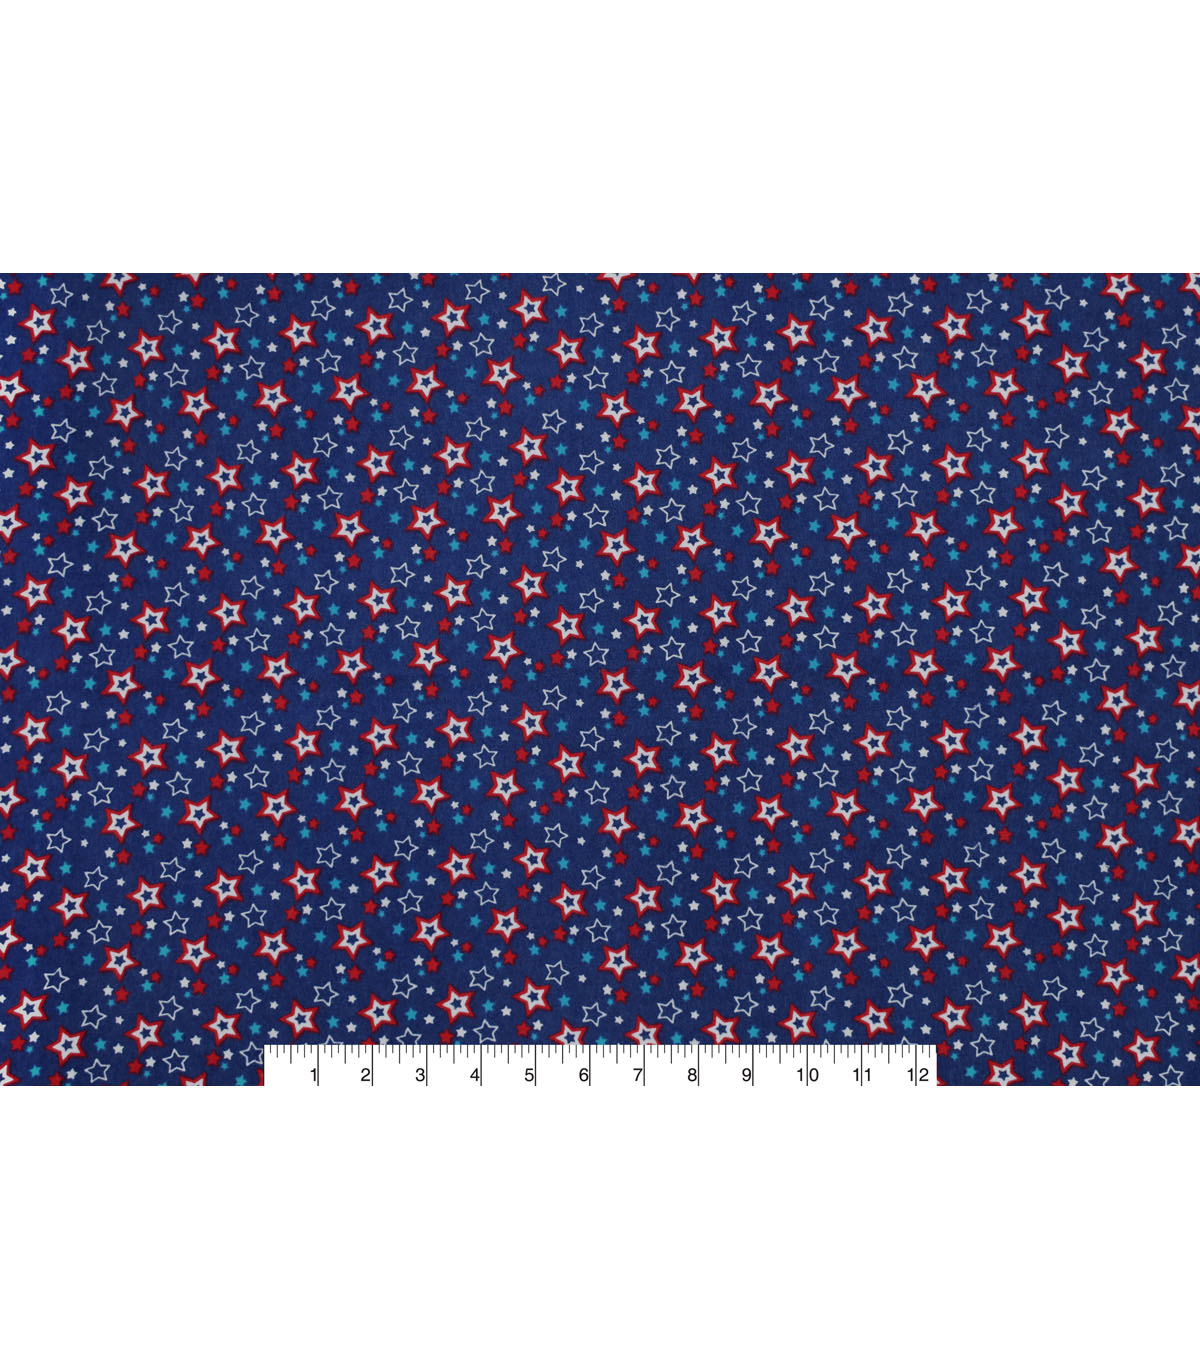 Snuggle Flannel Fabric -Independence Day Stars